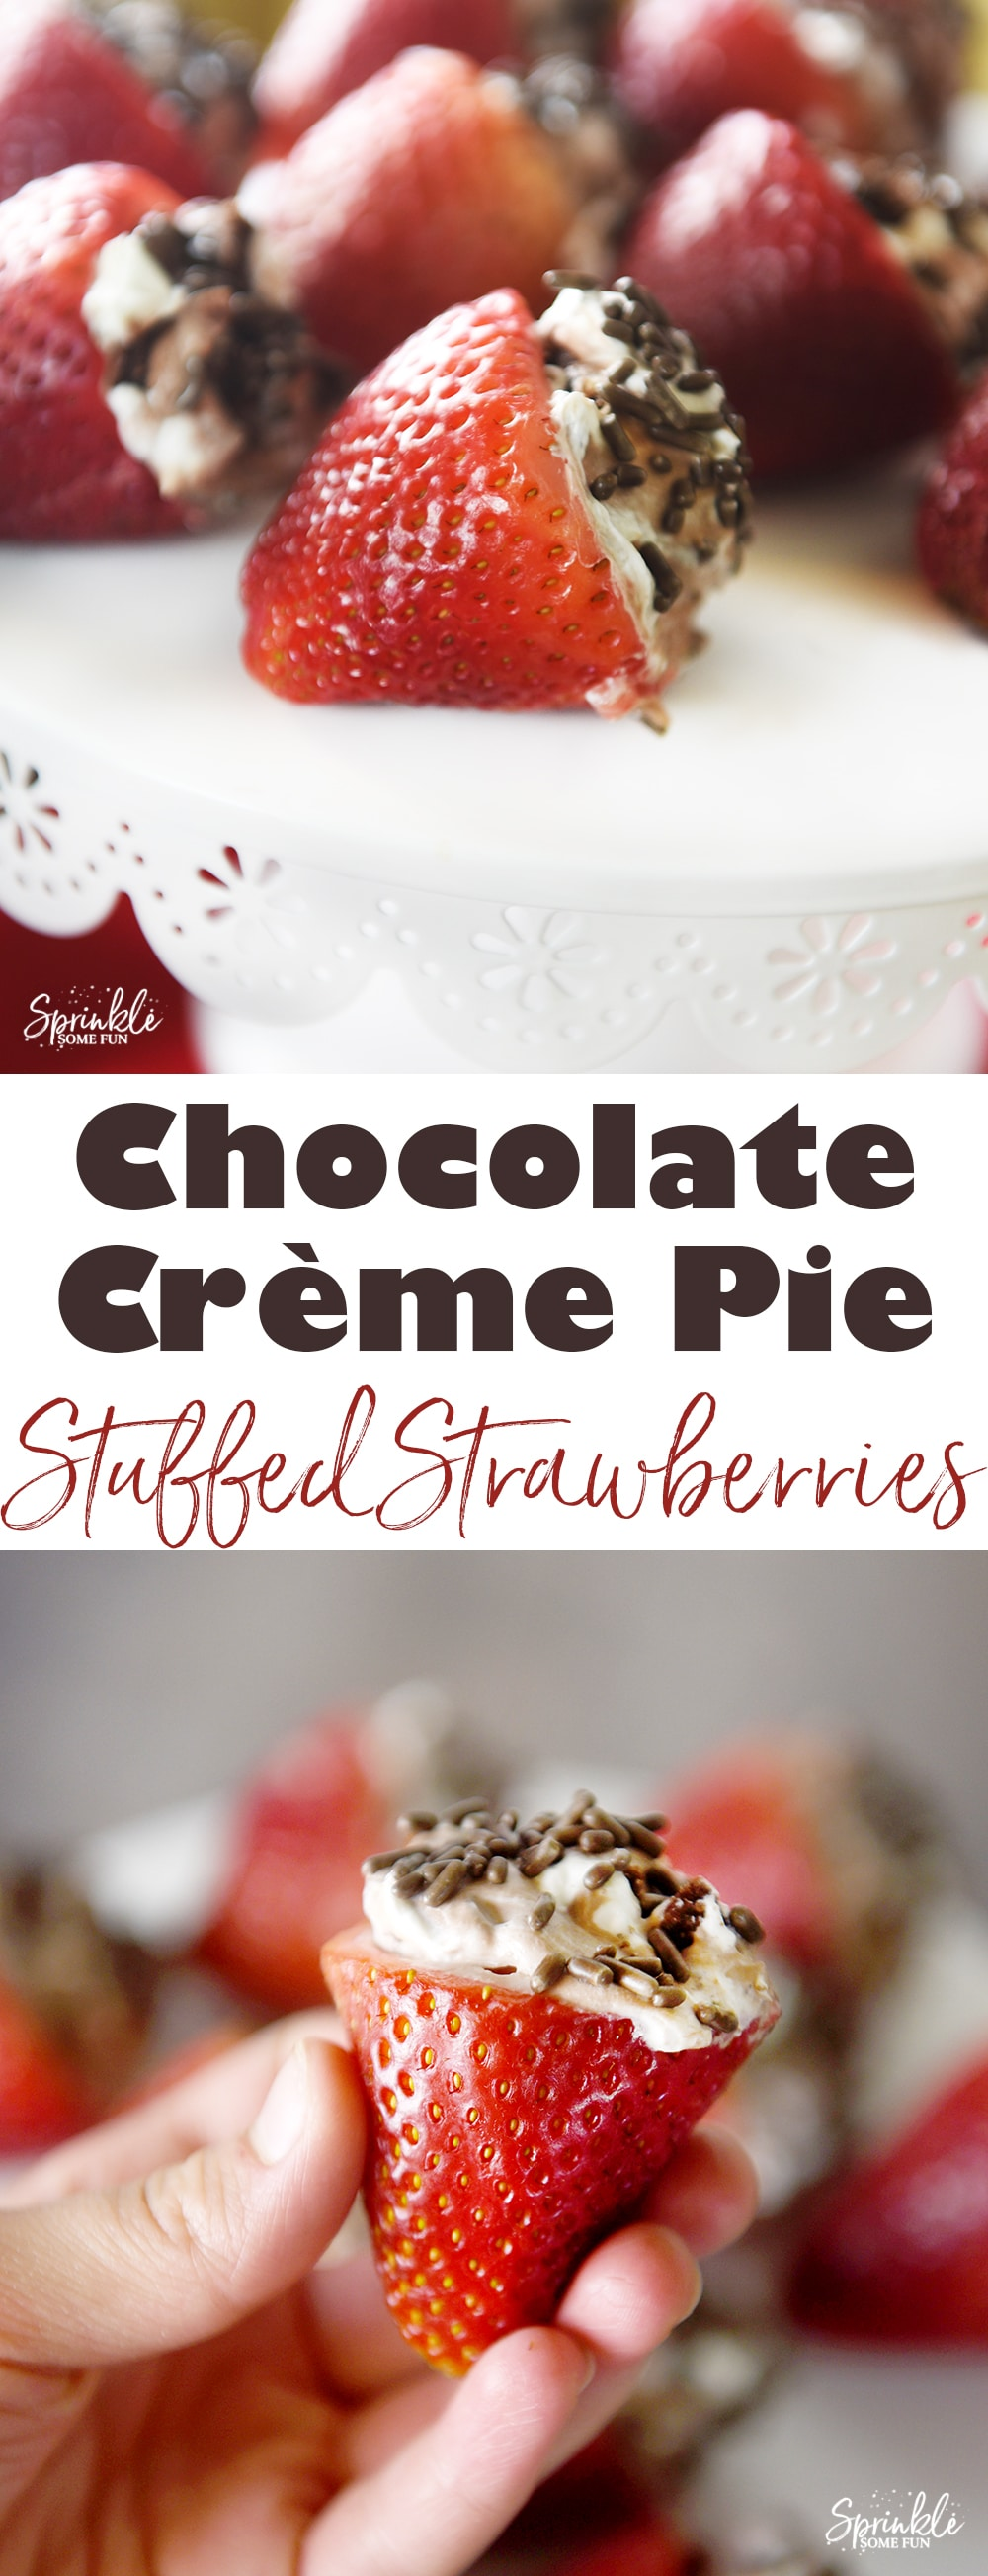 Chocolate Crème Pie Stuffed Strawberries are filled with a delicious Edwards Hershey Crème Pie and then sprinkled. You will LOVE this easy chocolate strawberry dessert!